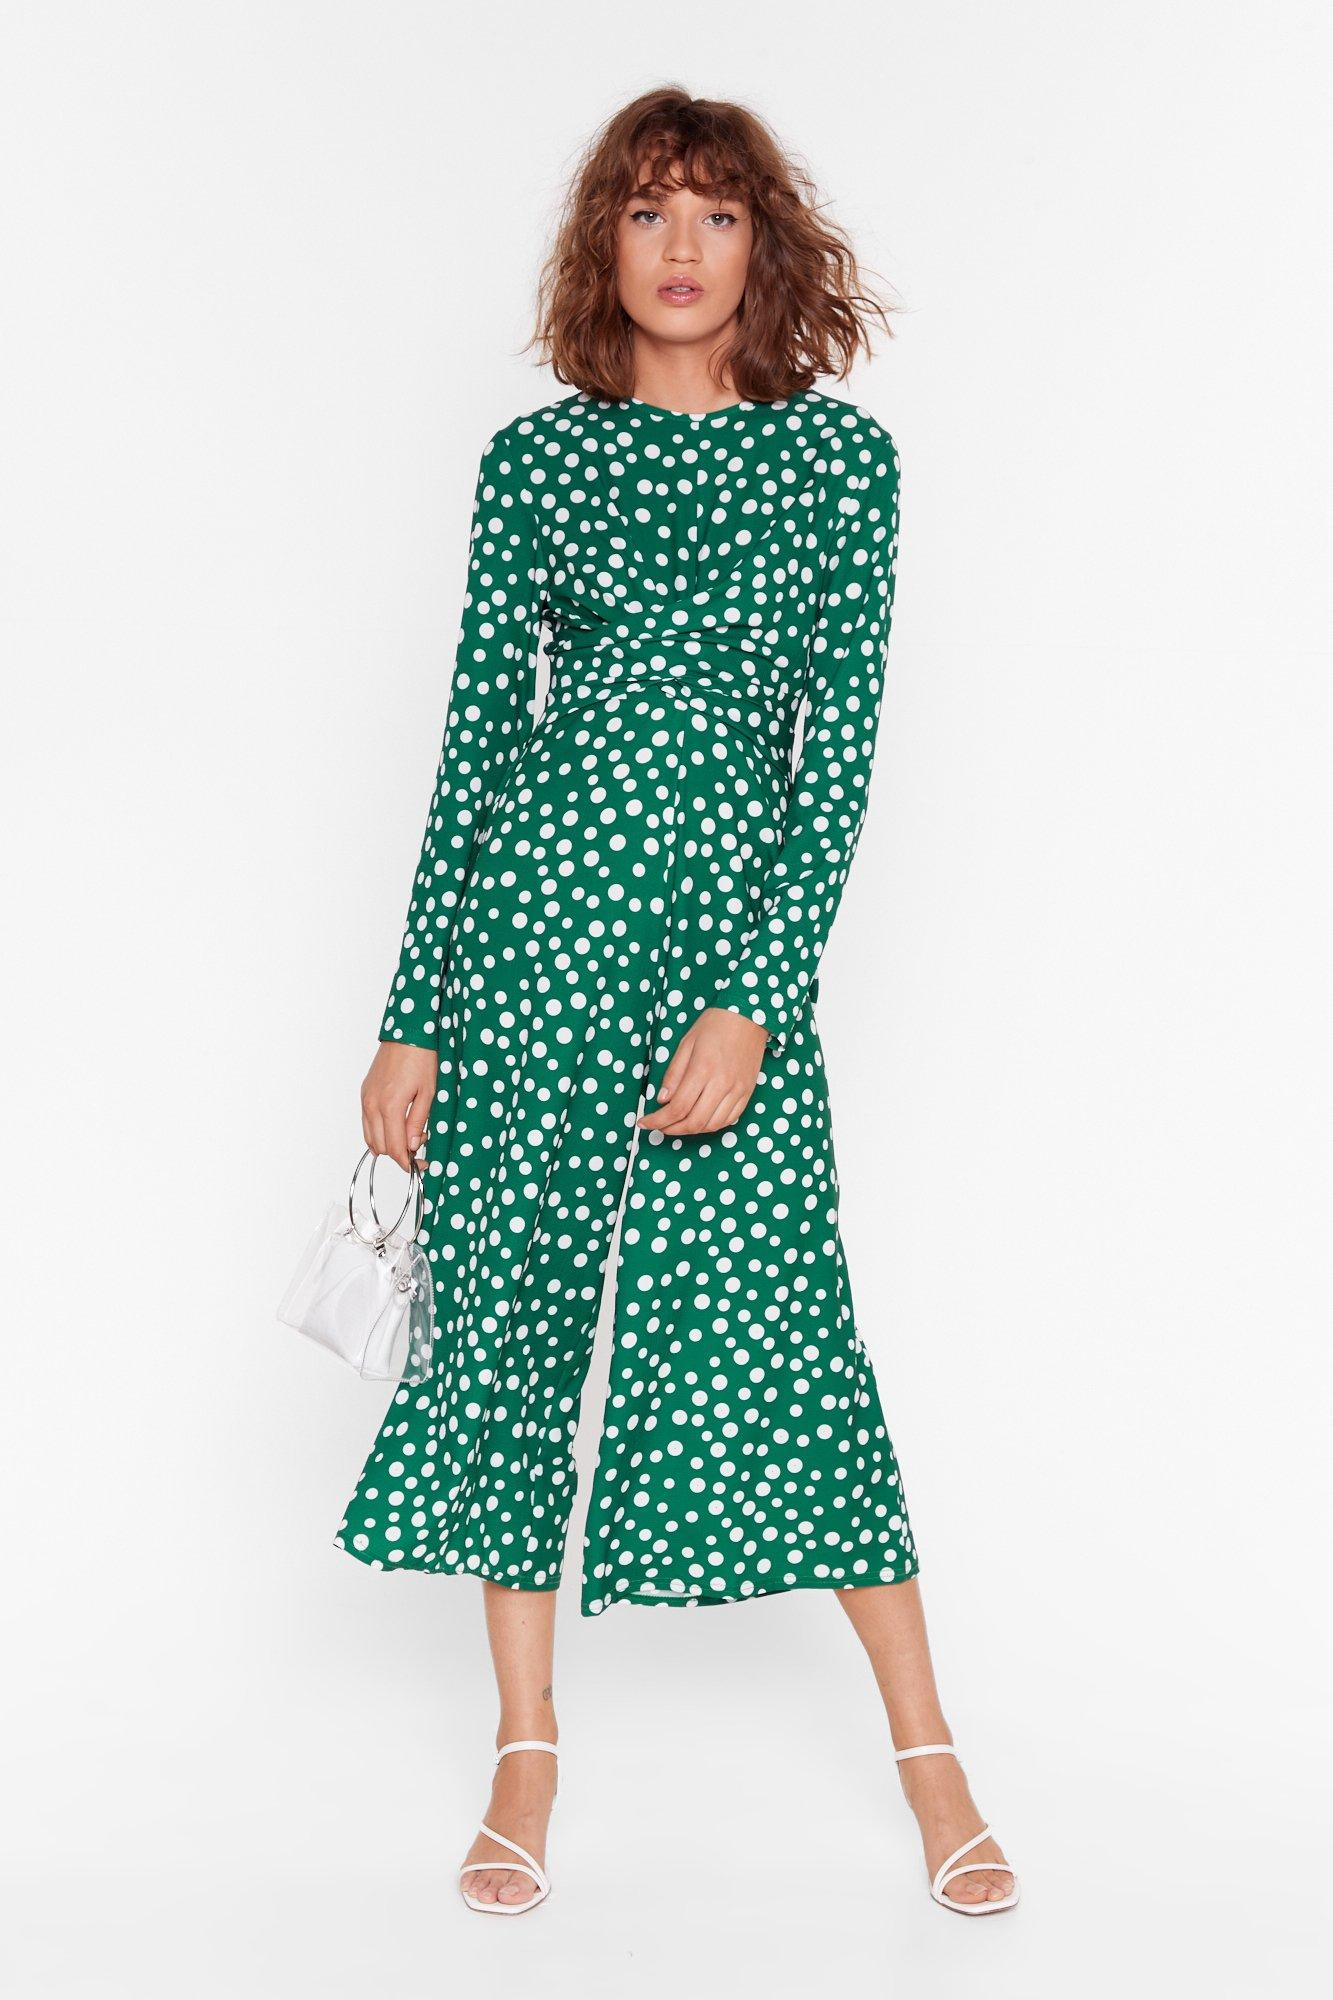 Image of Dot Ready to Go Polka Dot Jumpsuit